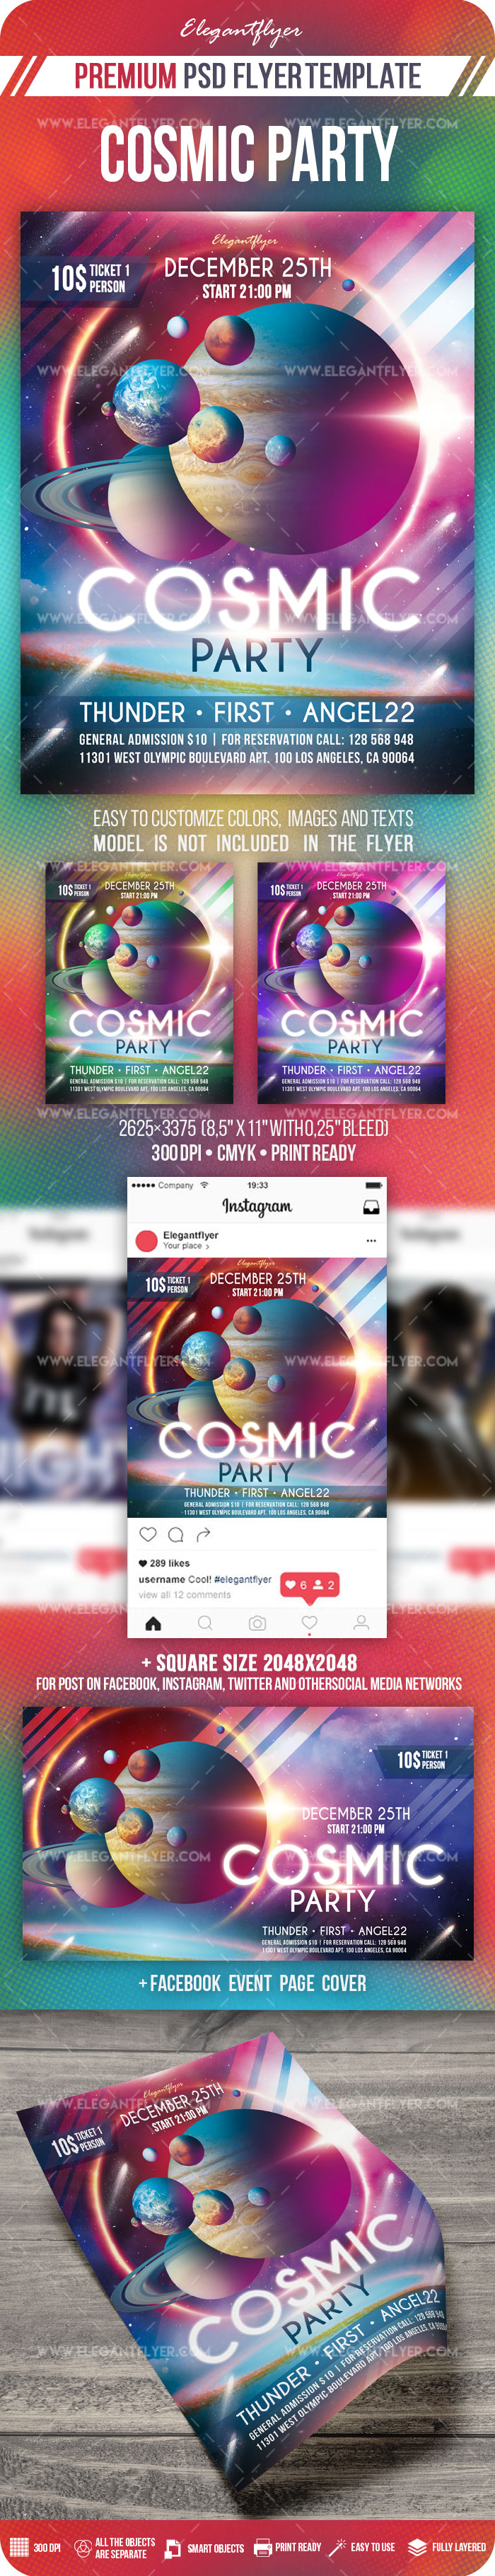 Cosmic Party – PSD Flyer Template + Facebook Cover + Instagram Post